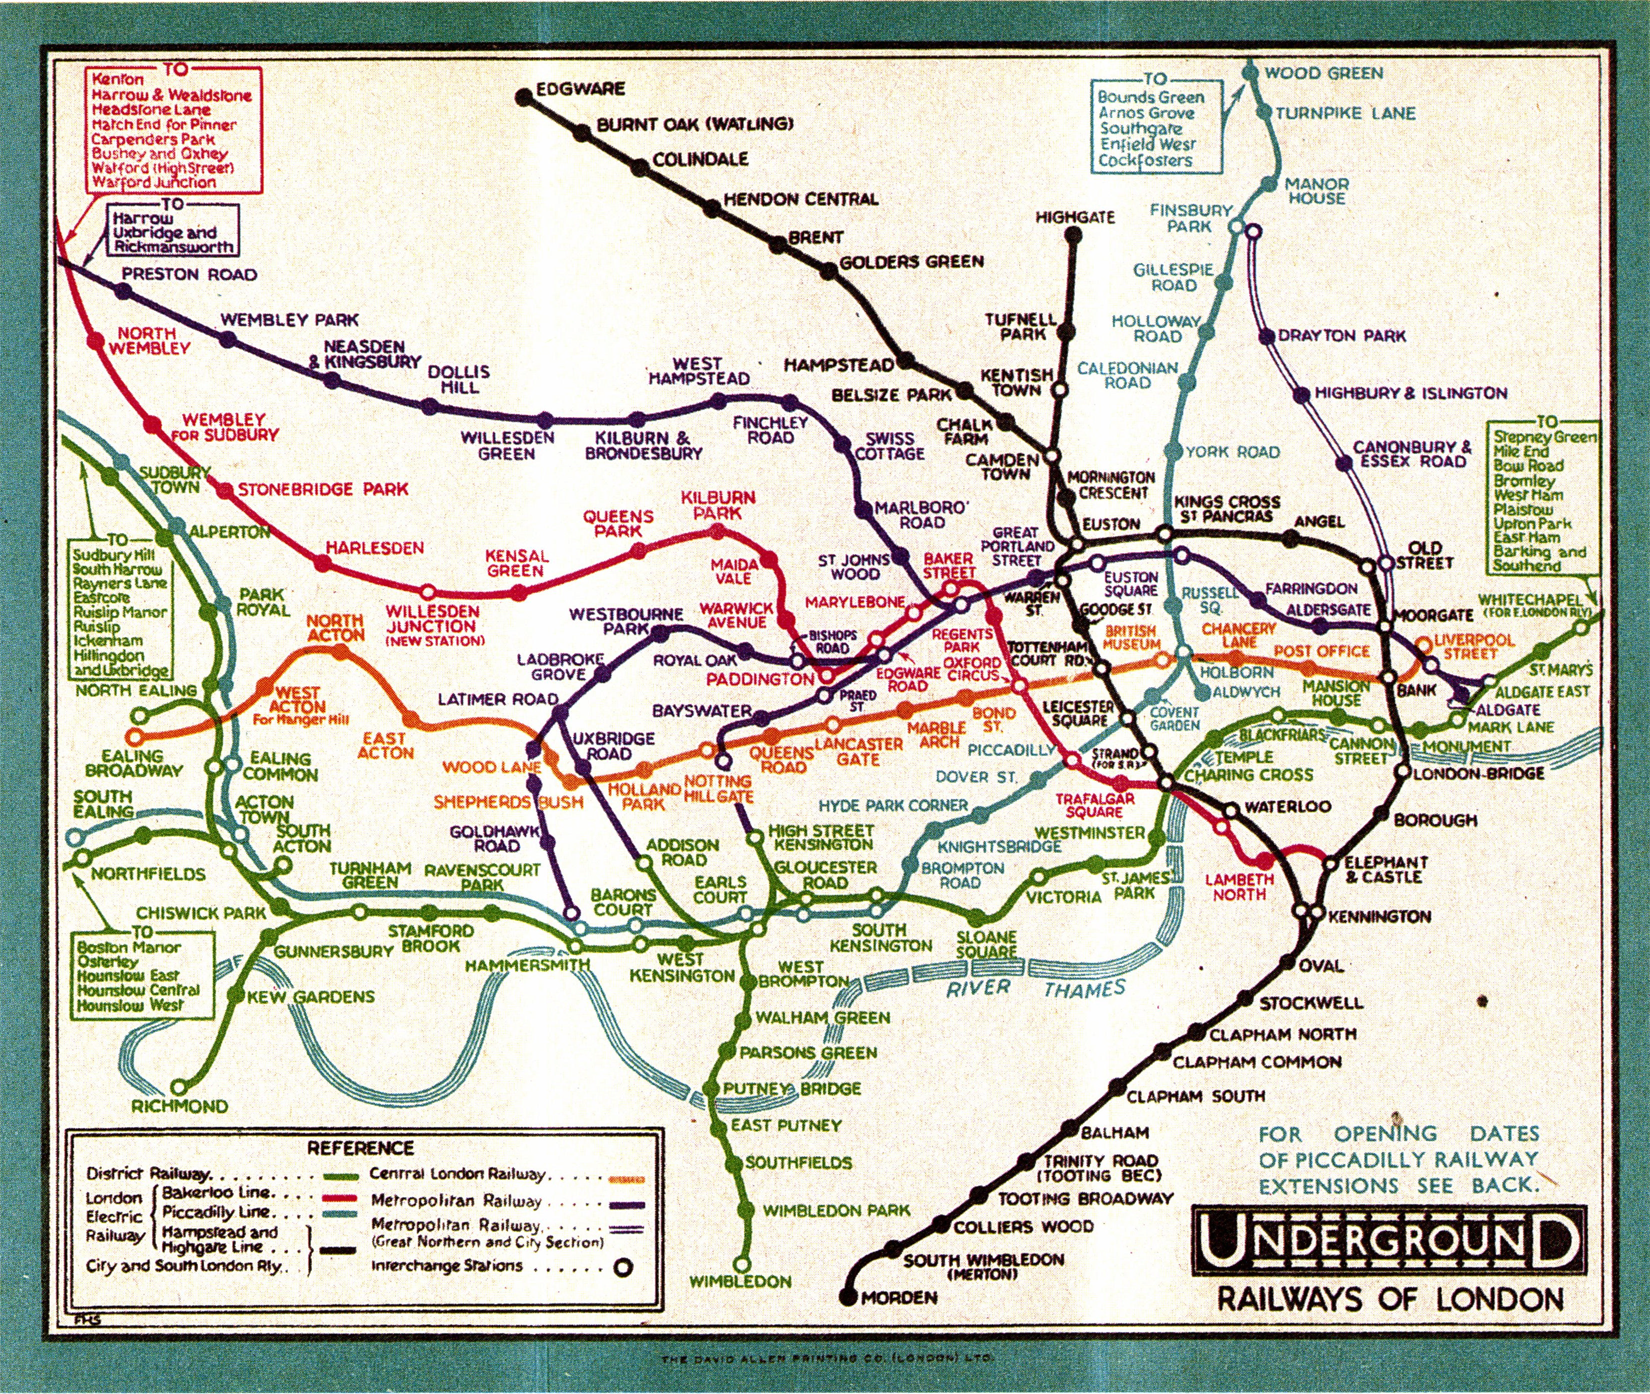 3 frederick h stingemore underground railways of london 1932 color lithograph 55 x 65 in printed by david allen printing co london